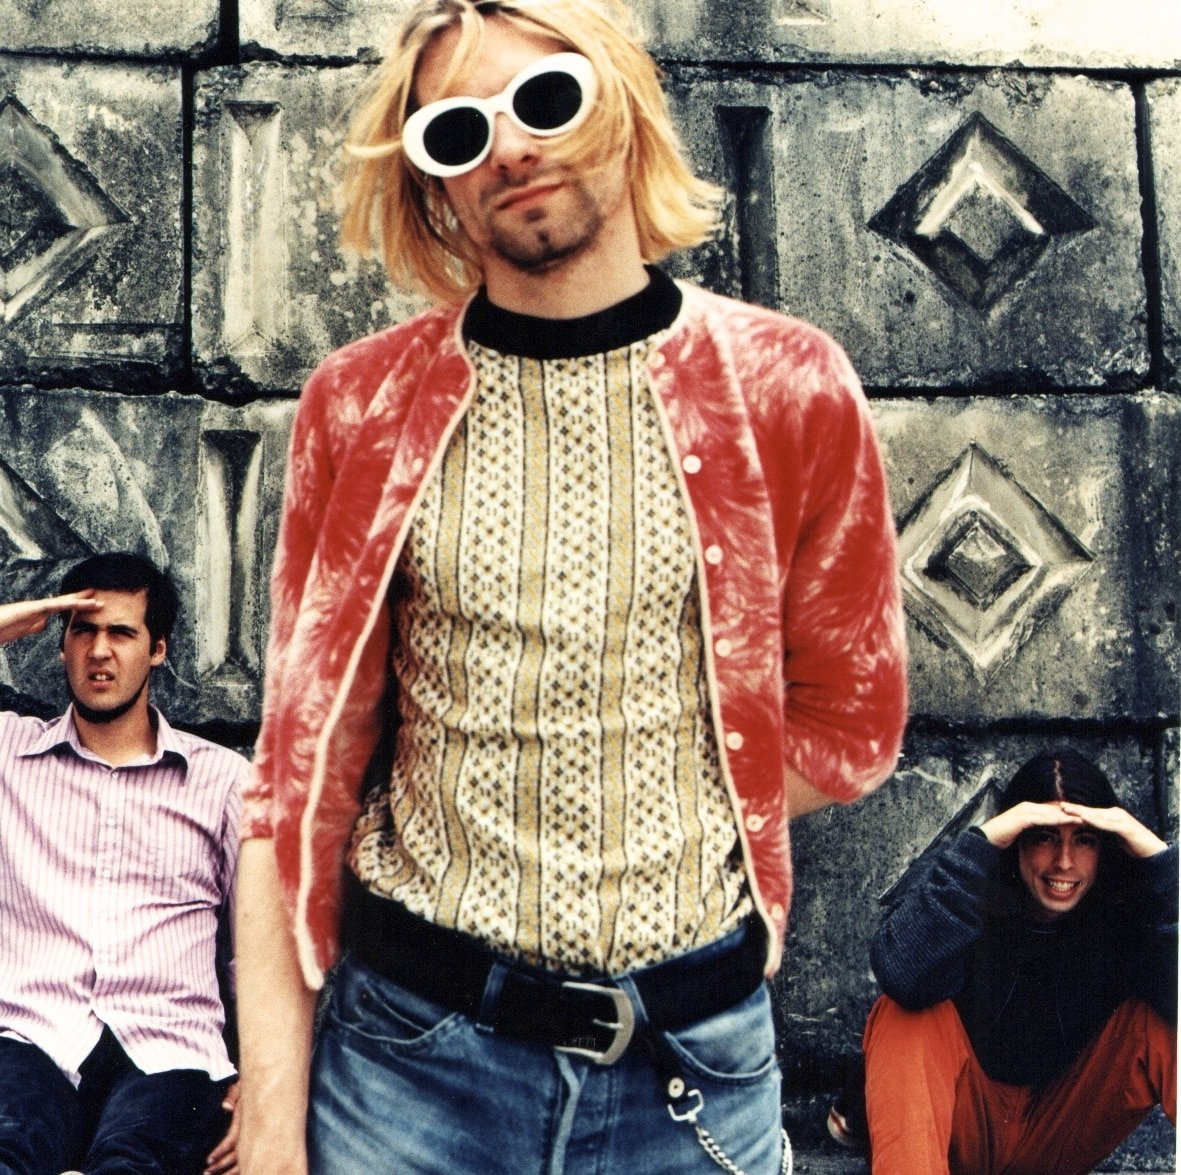 nirvana � original color photograph by anton corbijn